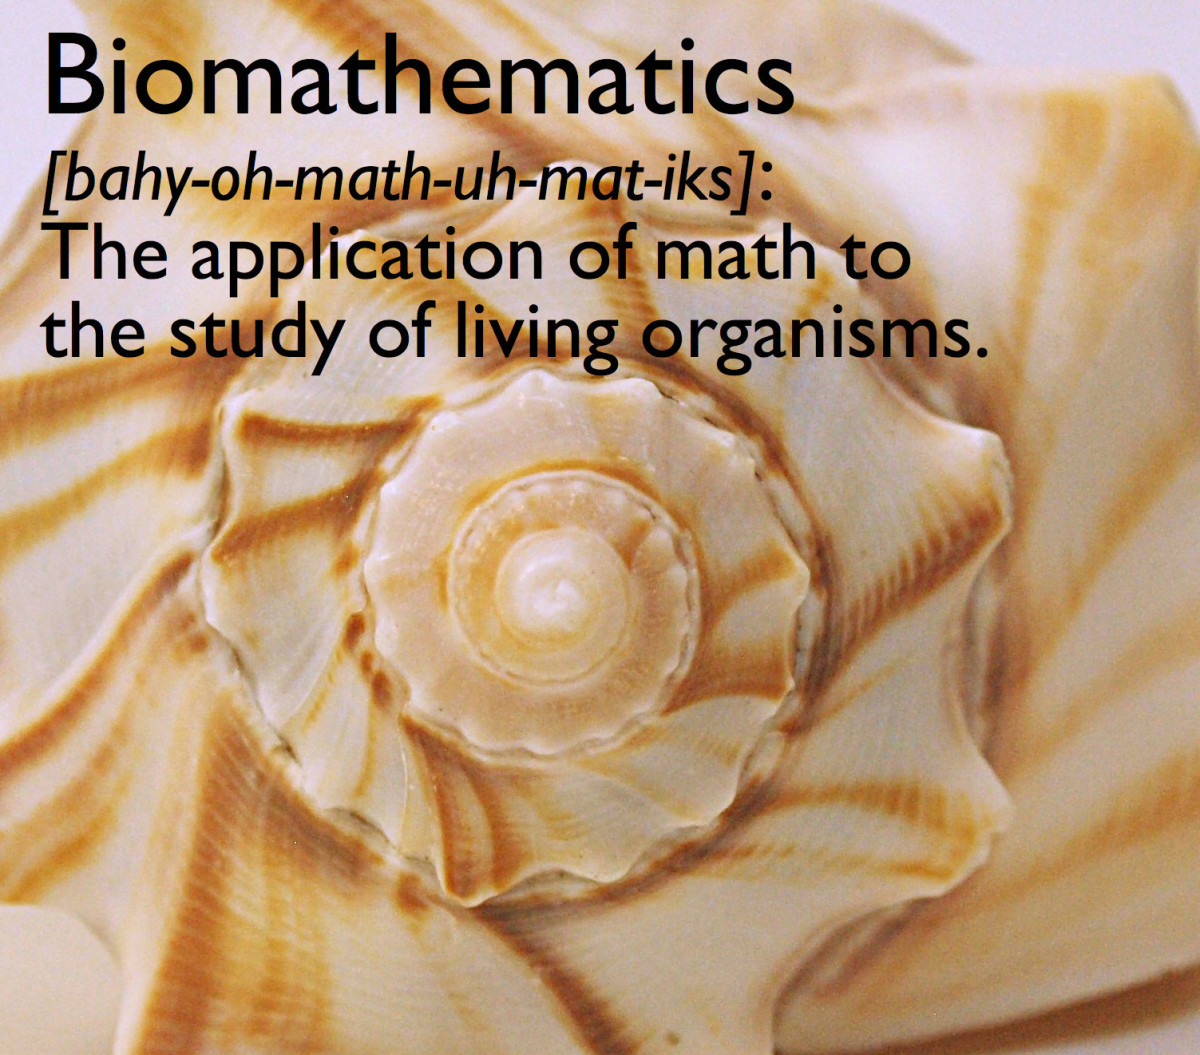 Biomathematics is the application of math to the study of living organisms.